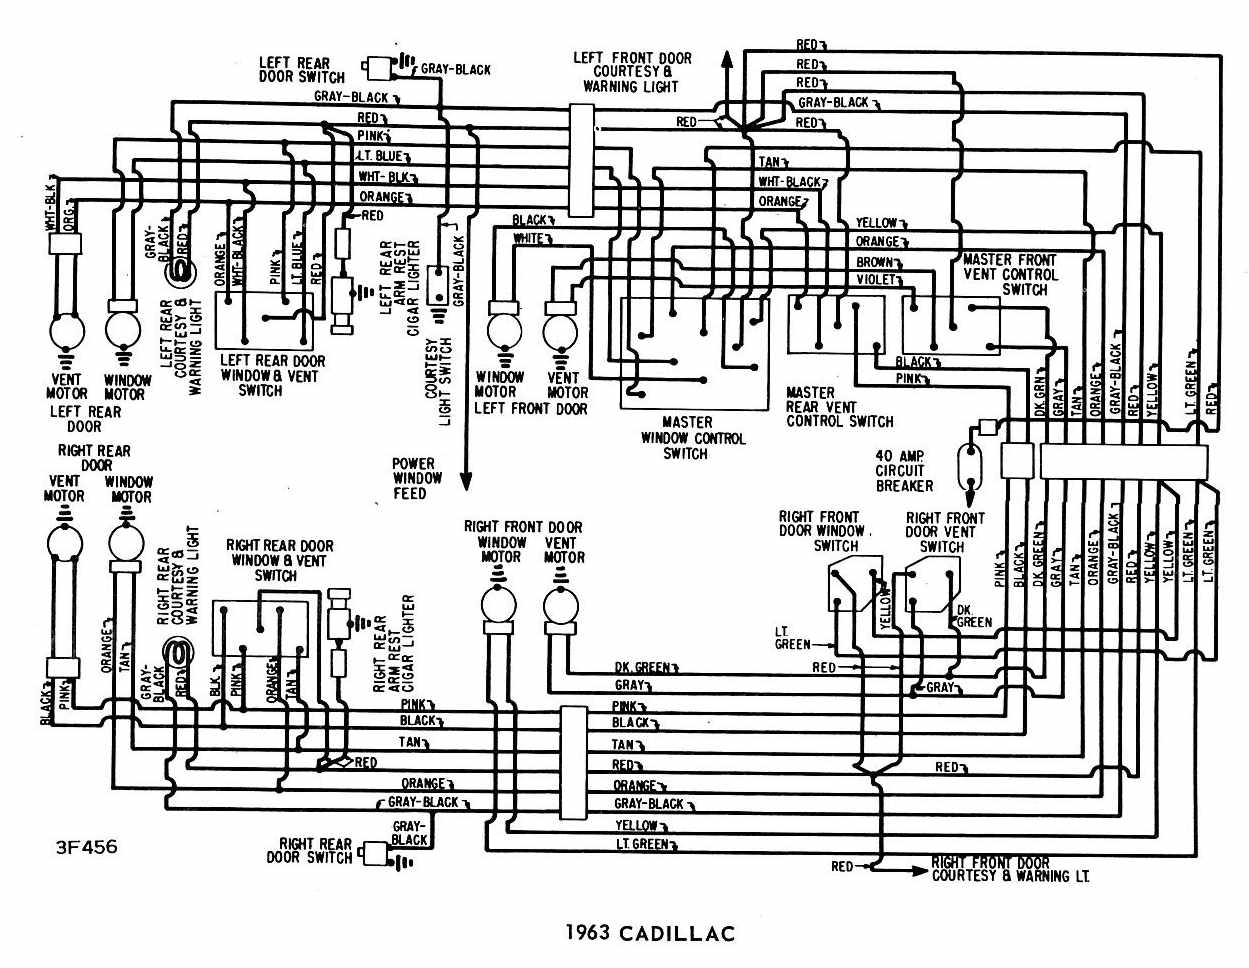 Cadillac 1963 Windows Wiring Diagram | All about Wiring Diagrams on 1988 chevy s10 ignition switch wiring diagram, 1960 impala wiring diagram, 1963 chevy 2 wiring diagram, 1968 chevy camaro wiring diagram, 1963 chevy c10 wiring diagram, 1963 ford thunderbird wiring diagram, 1968 chevy chevelle wiring diagram, dodge caliber headlight wiring diagram, 1969 chevy camaro wiring diagram, 1965 chevy wiring diagram, 1970 plymouth cuda wiring diagram, 1963 ford galaxie wiring diagram, 1963 chevy c20 wiring diagram, 63 chevy wiring diagram, 1970 chevy chevelle wiring diagram, 1969 chevy chevelle wiring diagram, 57 chevy wiring diagram, 1963 chevy truck shop manual, 2005 chevy malibu classic wiring diagram, chevy truck ignition switch wiring diagram,